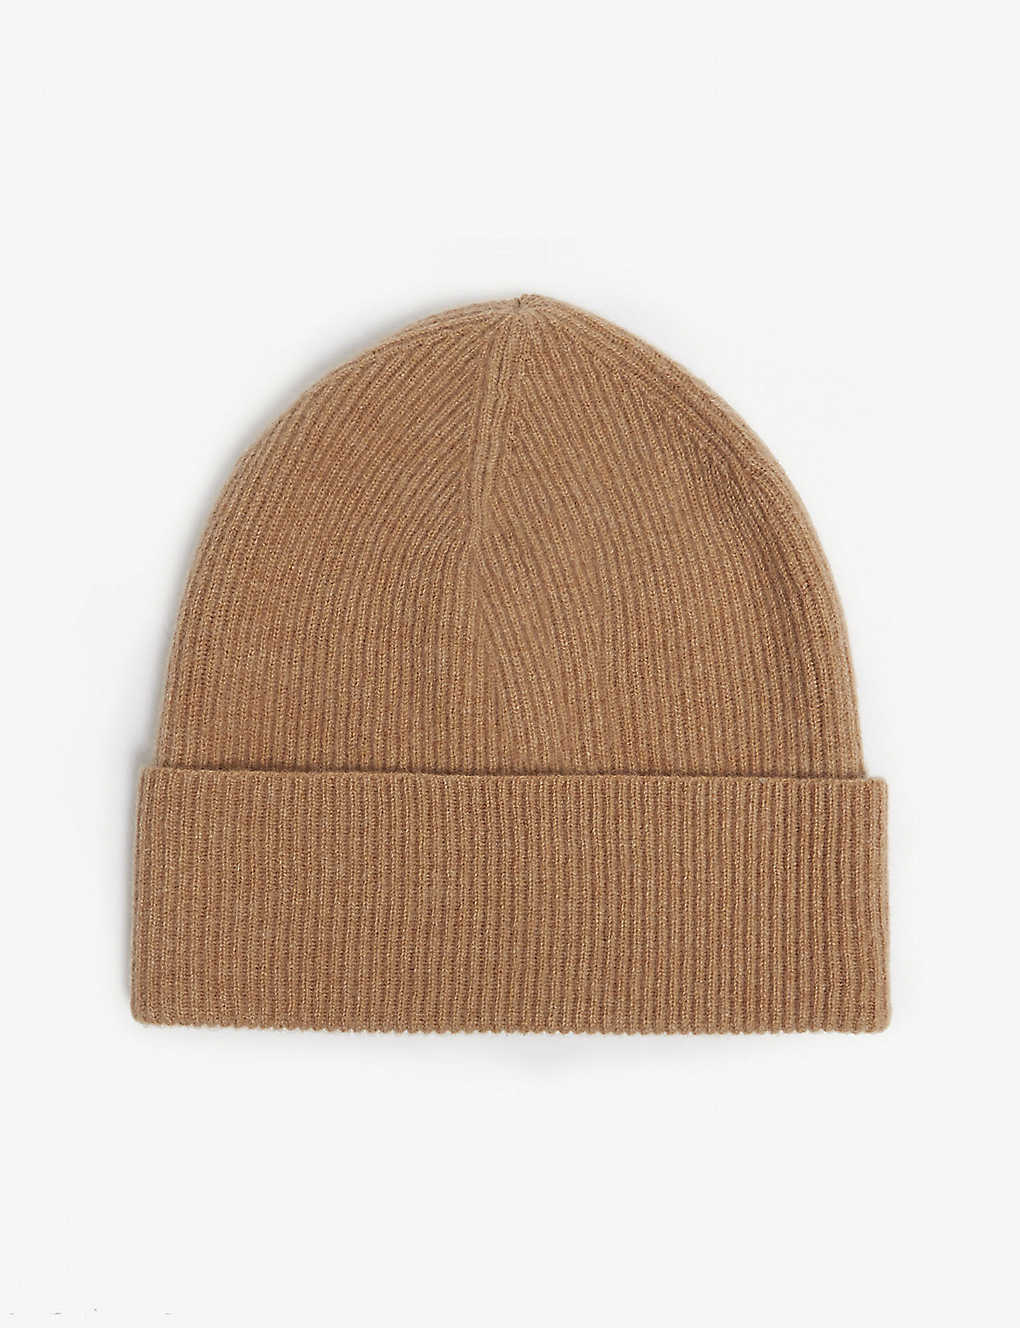 LOU DUNGATE - Exeter cashmere ribbed beanie  42310e1f2d82